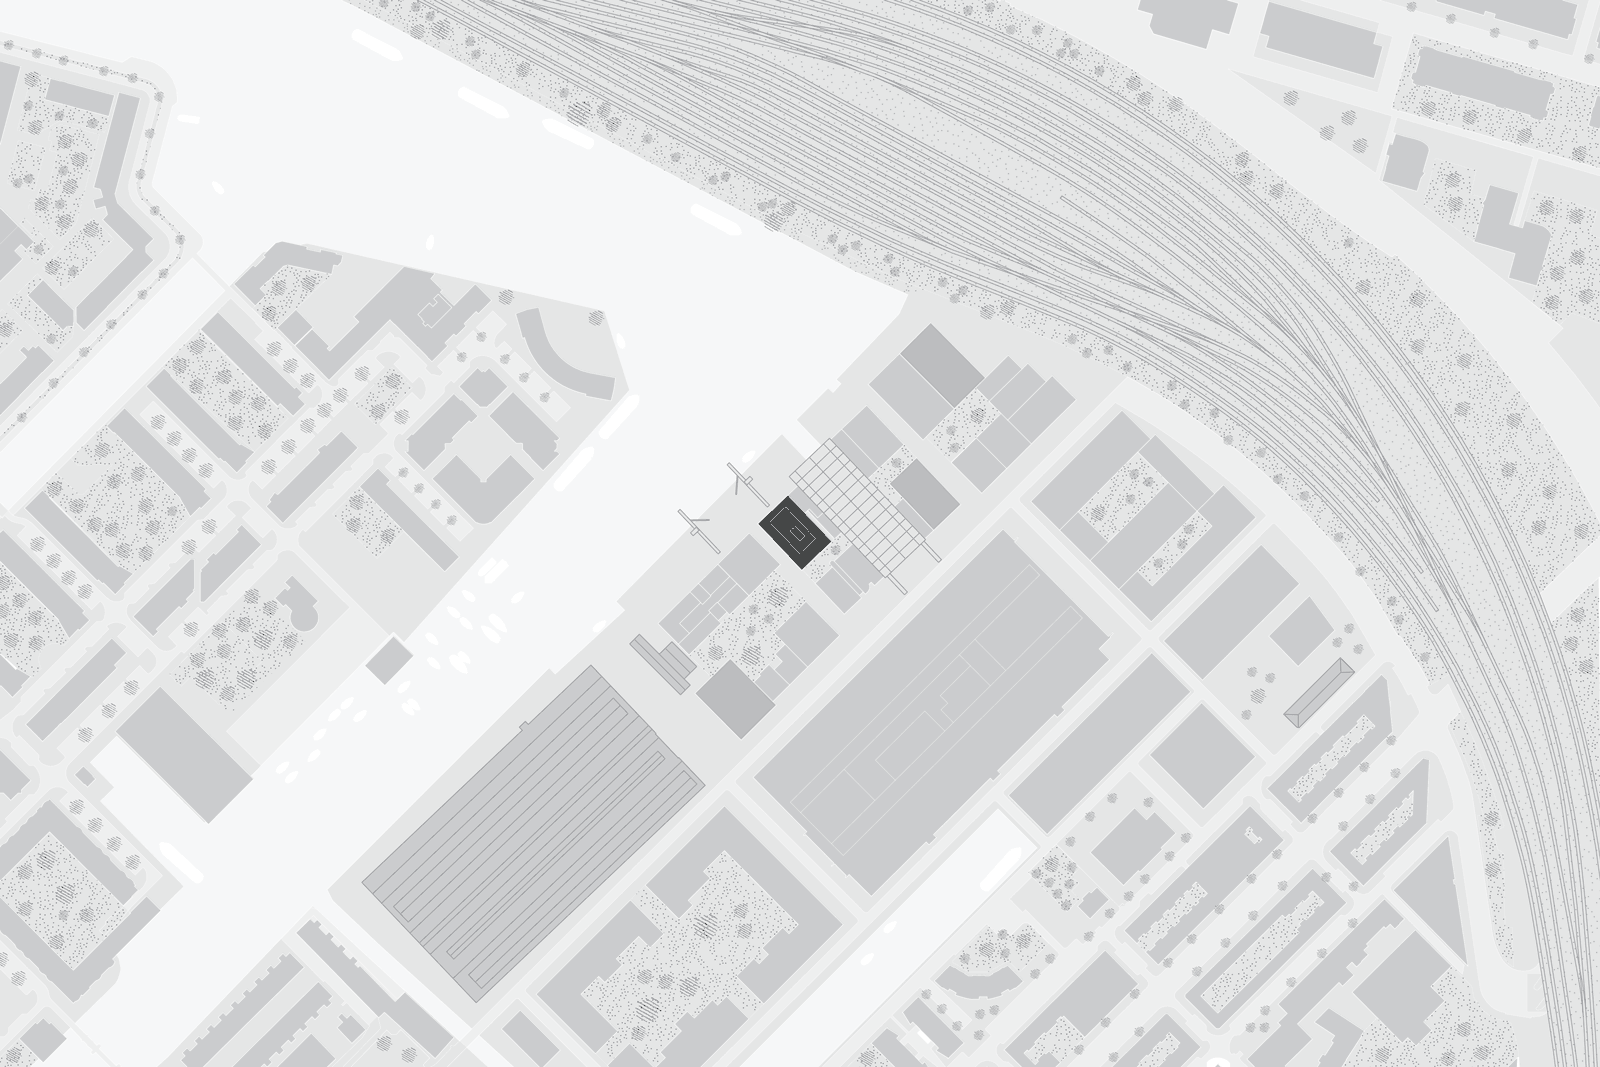 site plan of Oostenburg project by beta architect amsterdam Evert Klinkenberg Auguste Gus van Oppen